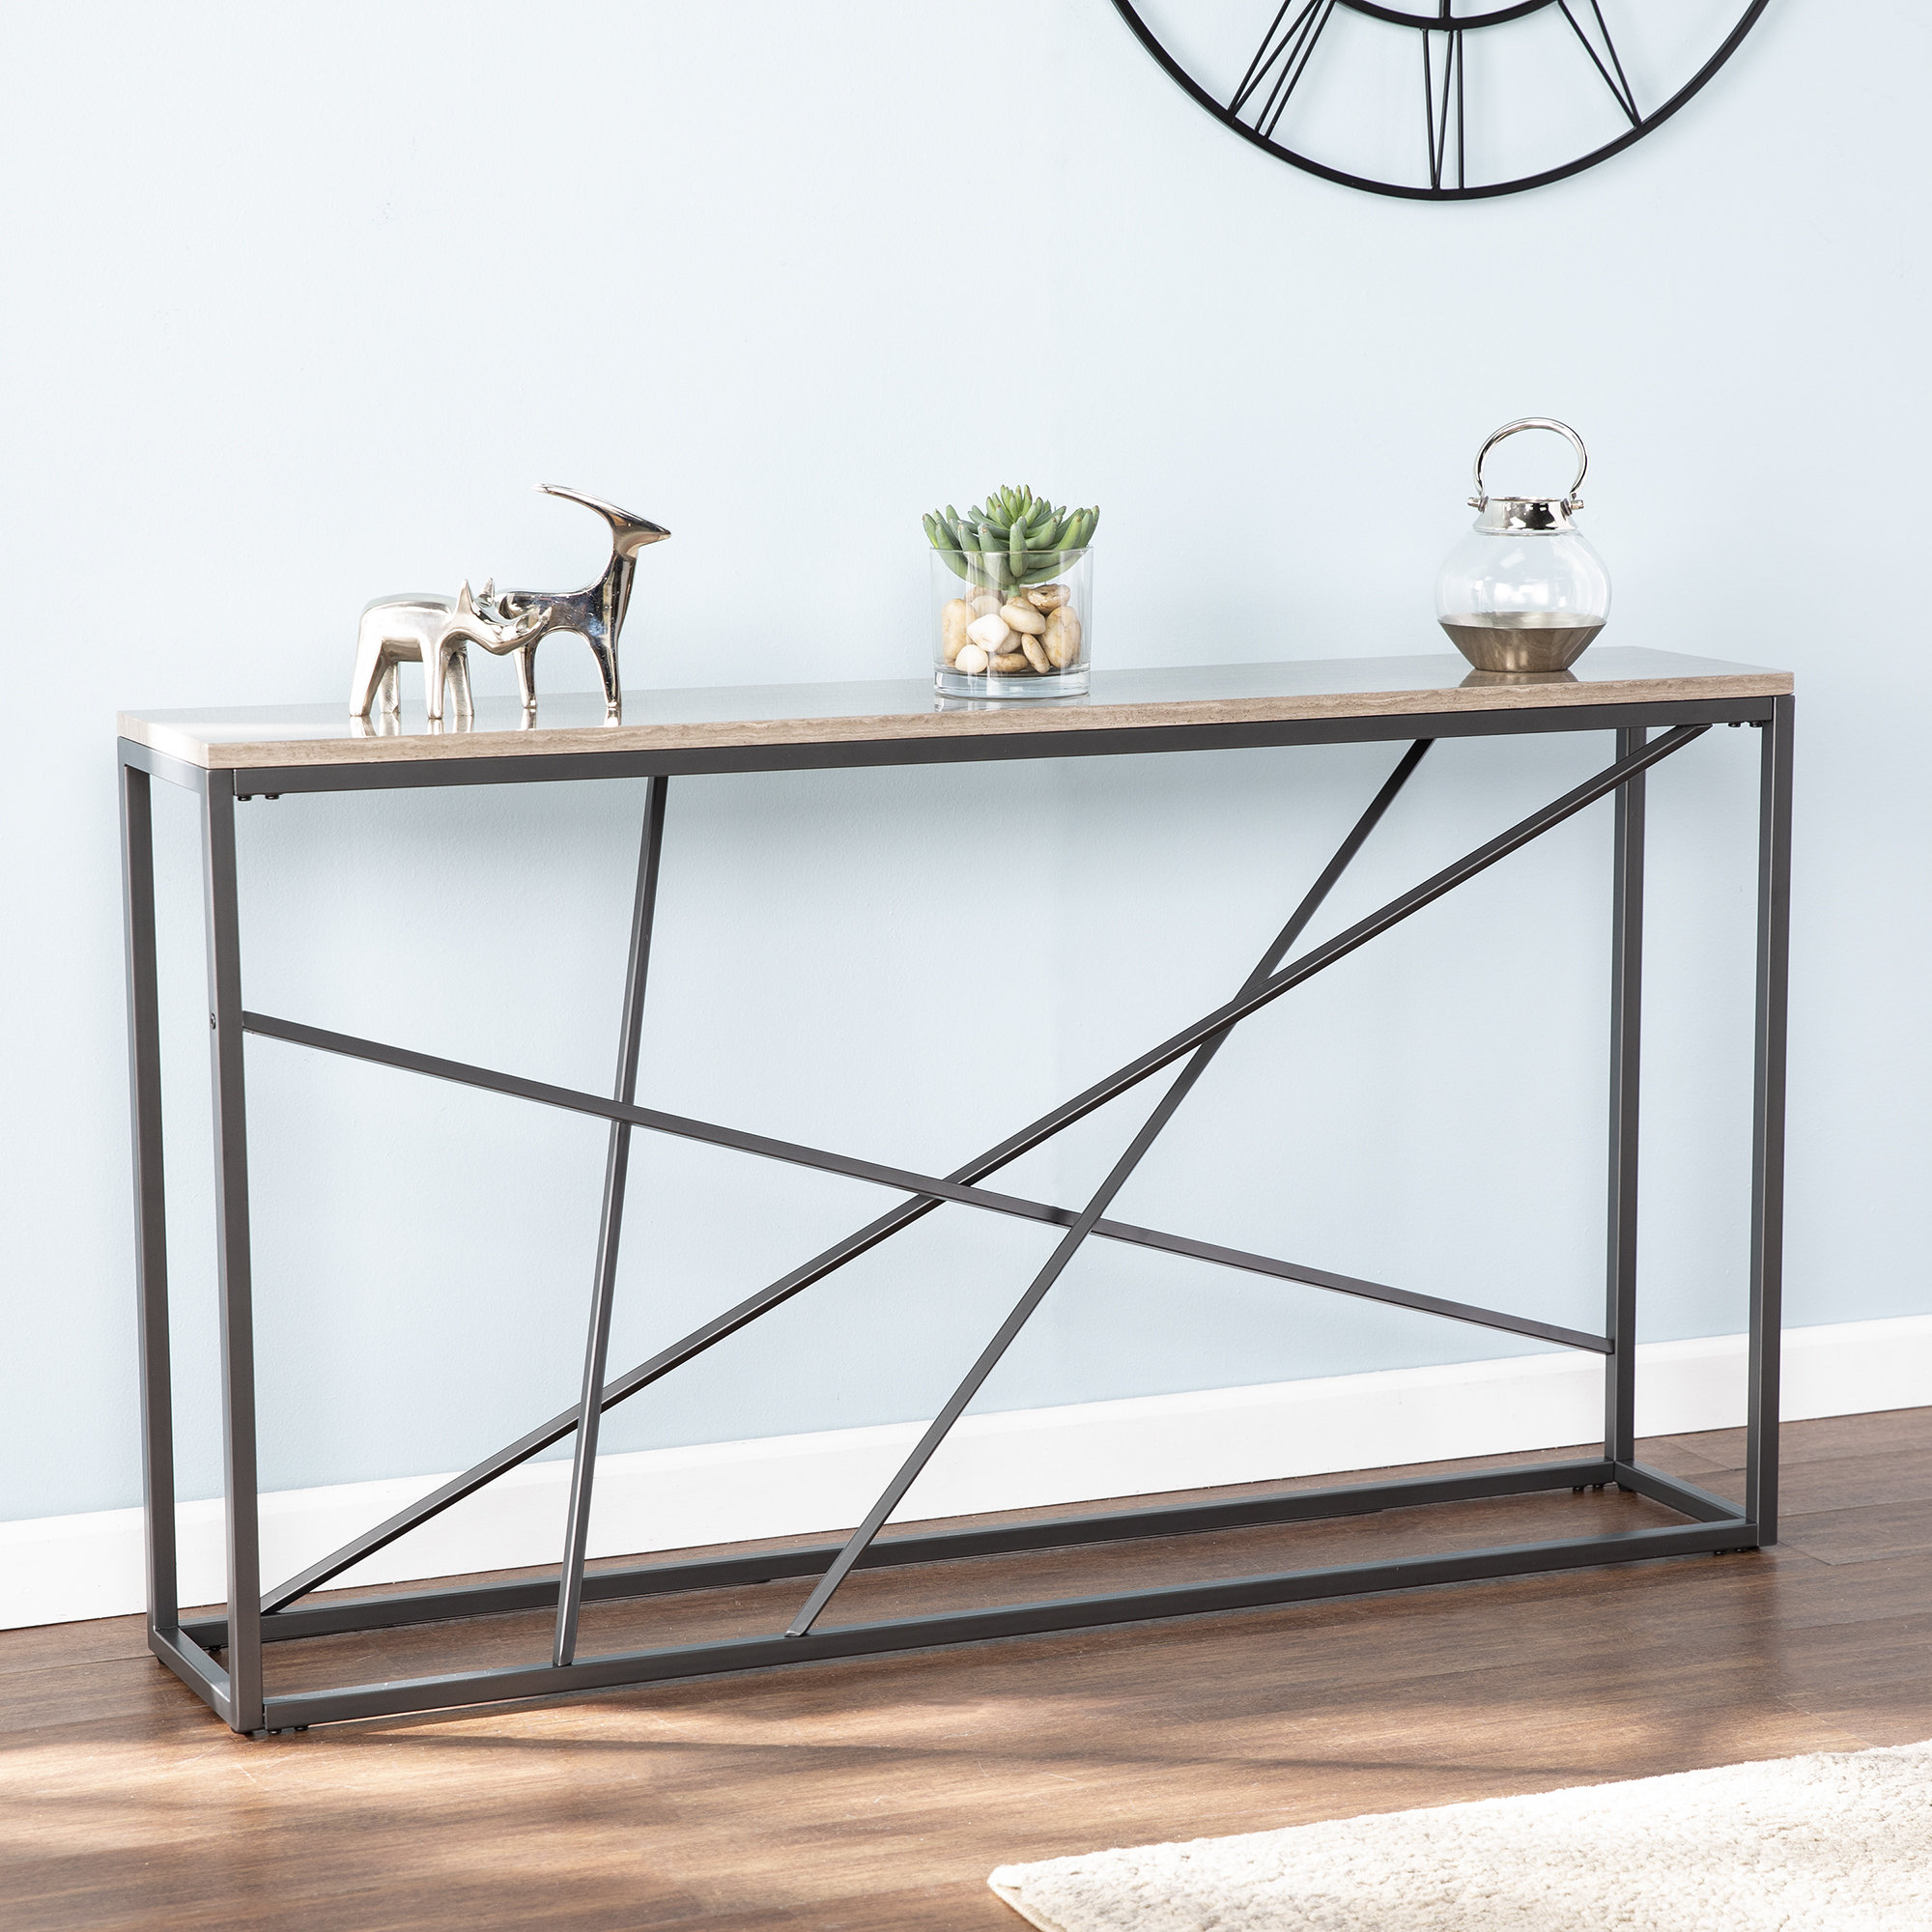 Narrow Console Tables You'll Love | Wayfair In Layered Wood Small Square Console Tables (View 10 of 30)